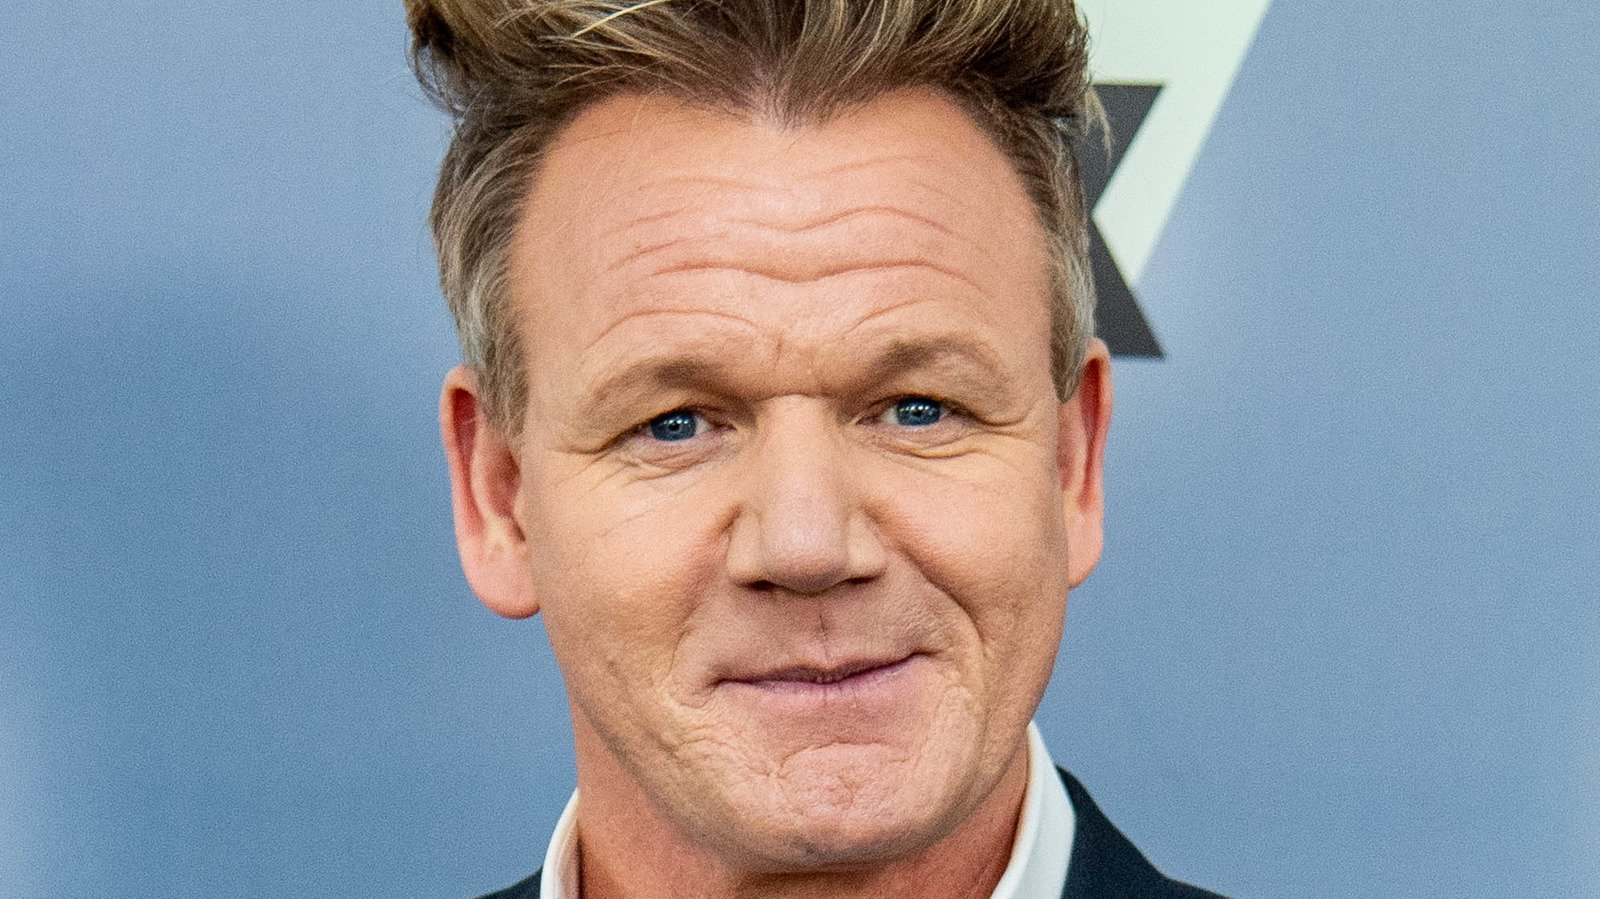 Gordon Ramsay's Transformation Is Really Turning Heads